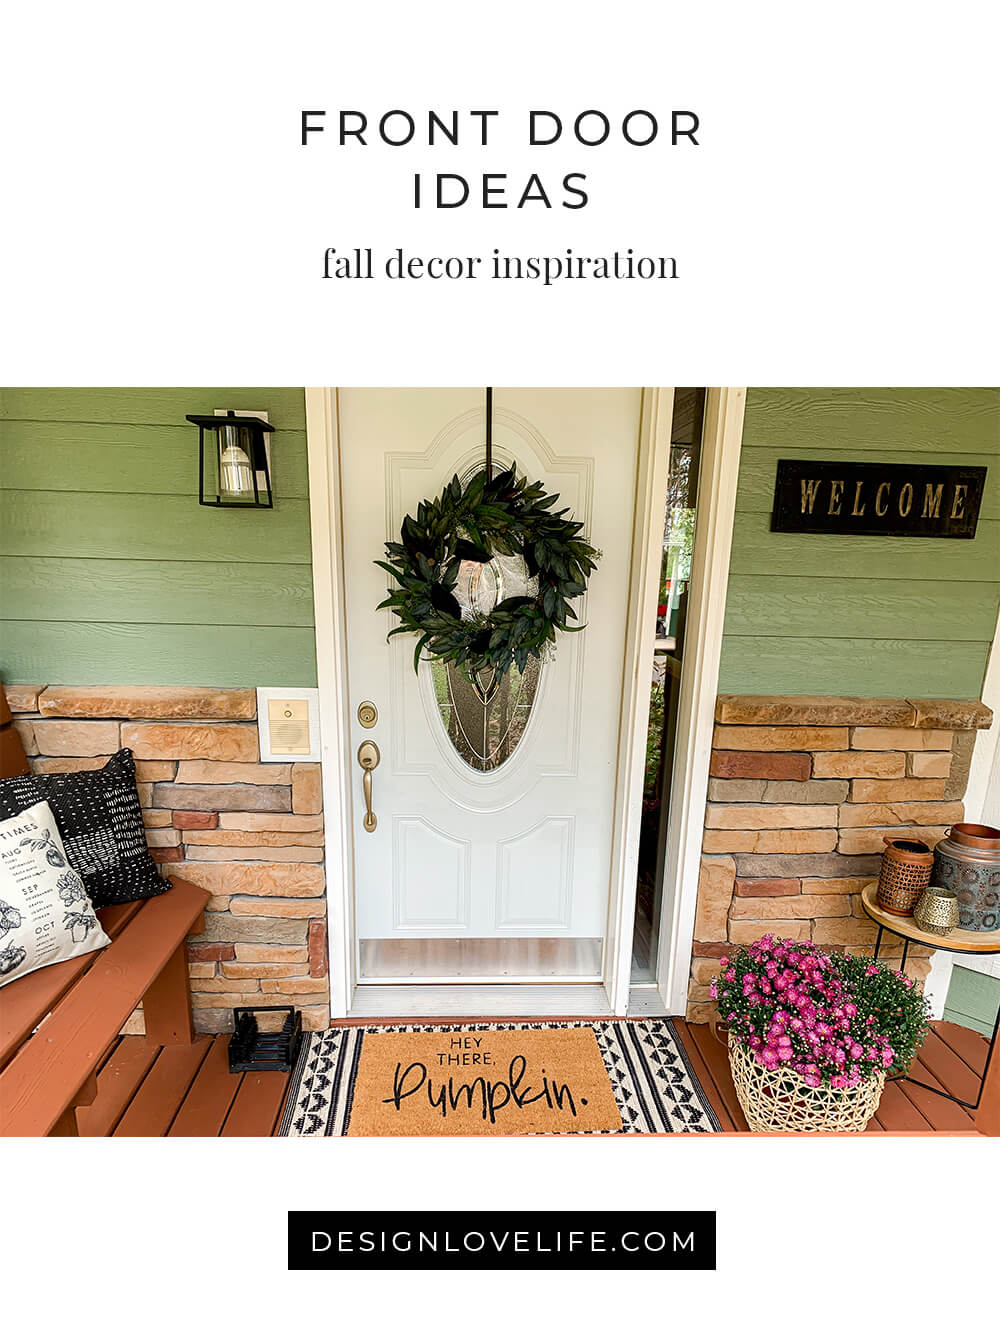 Front Door Decor Ideas for Fall. Annie Johnson | Design Love Life